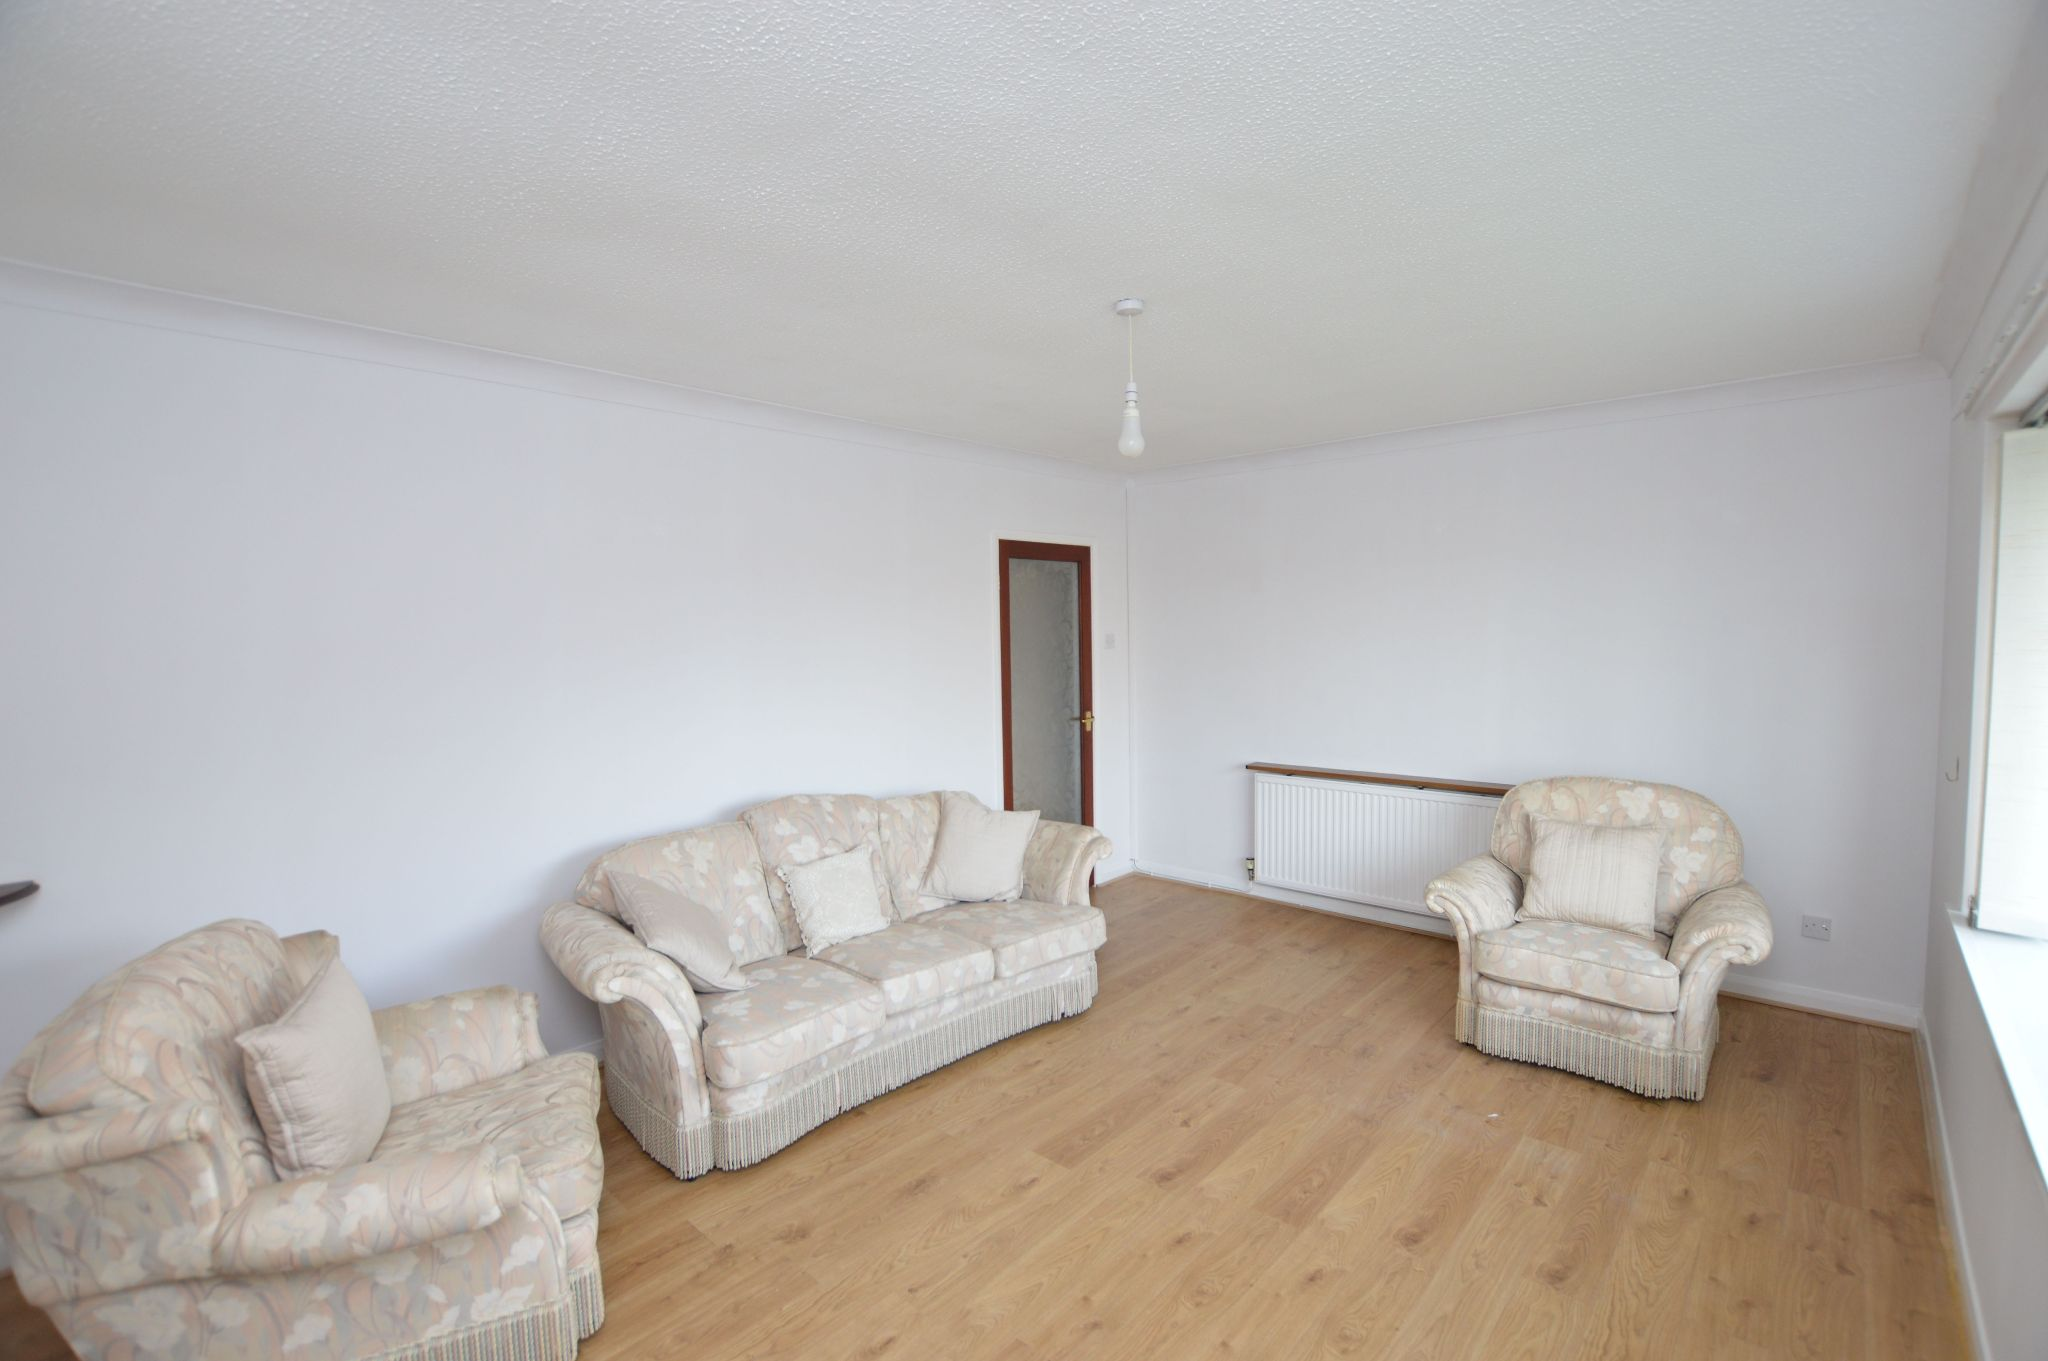 2 bedroom detached bungalow Under Offer in Abergele - Lounge View 3